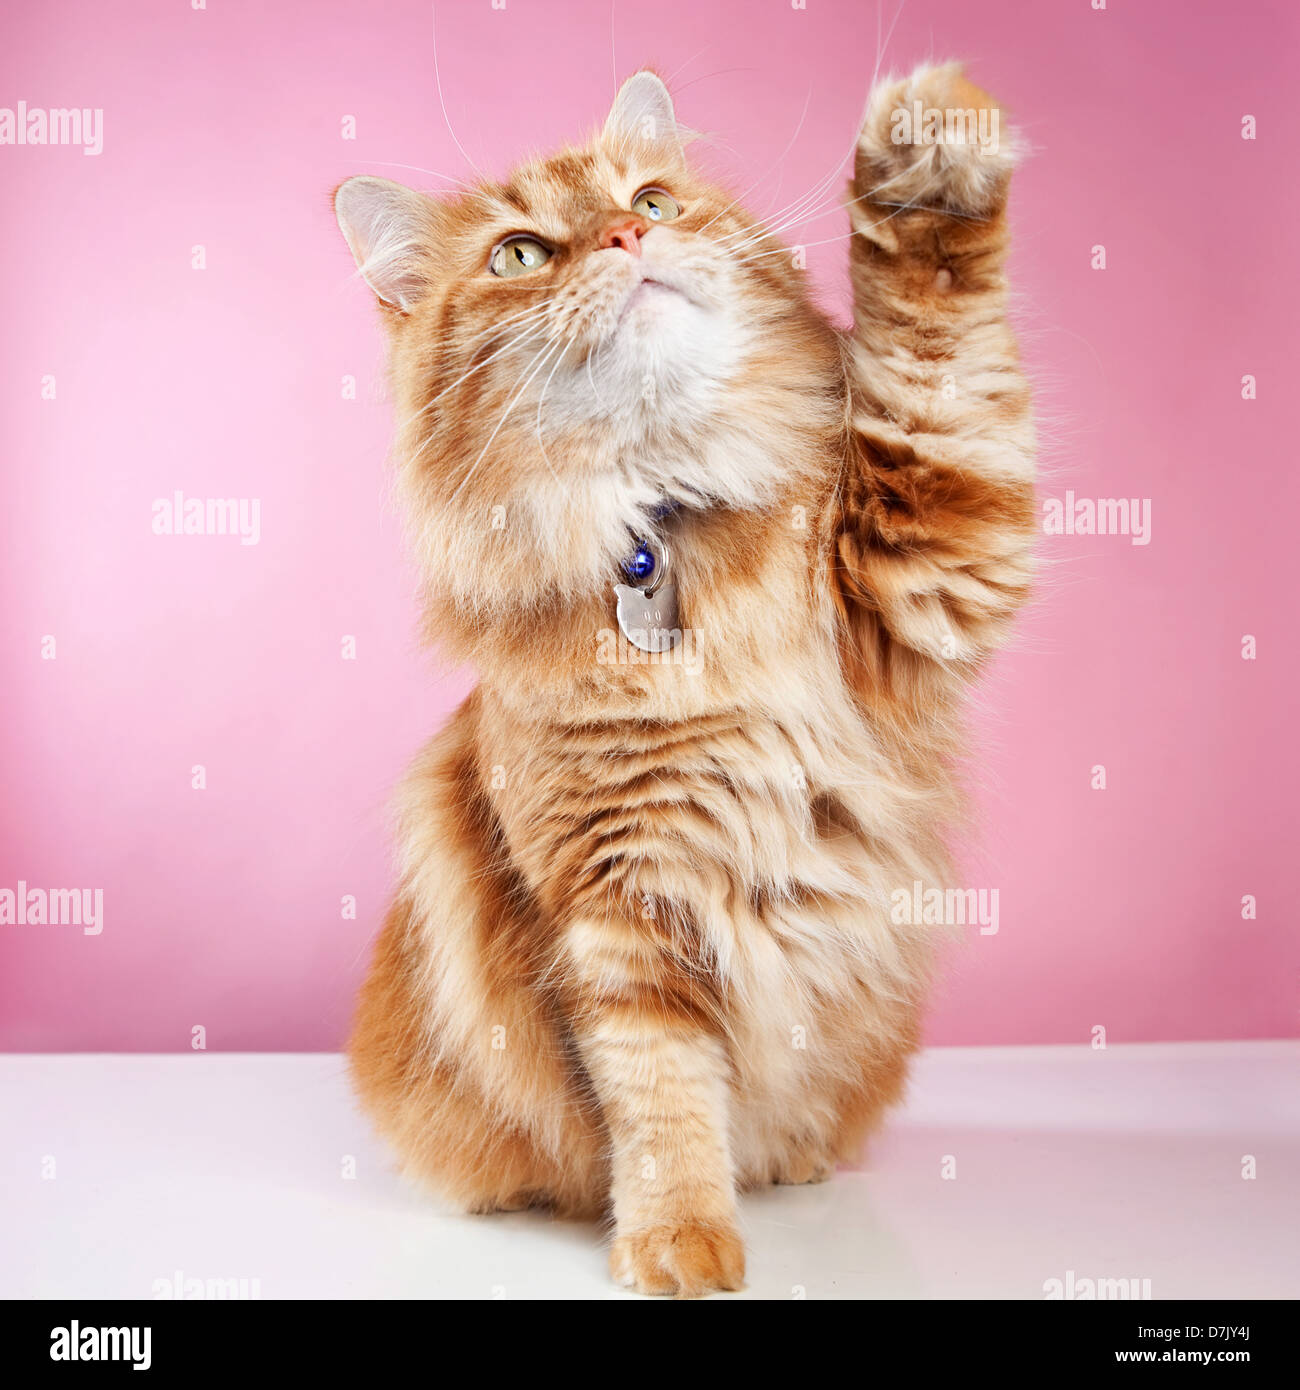 Fluffly ginger stripey manx  cat with name collar and paw raised against pink backdrop - Stock Image